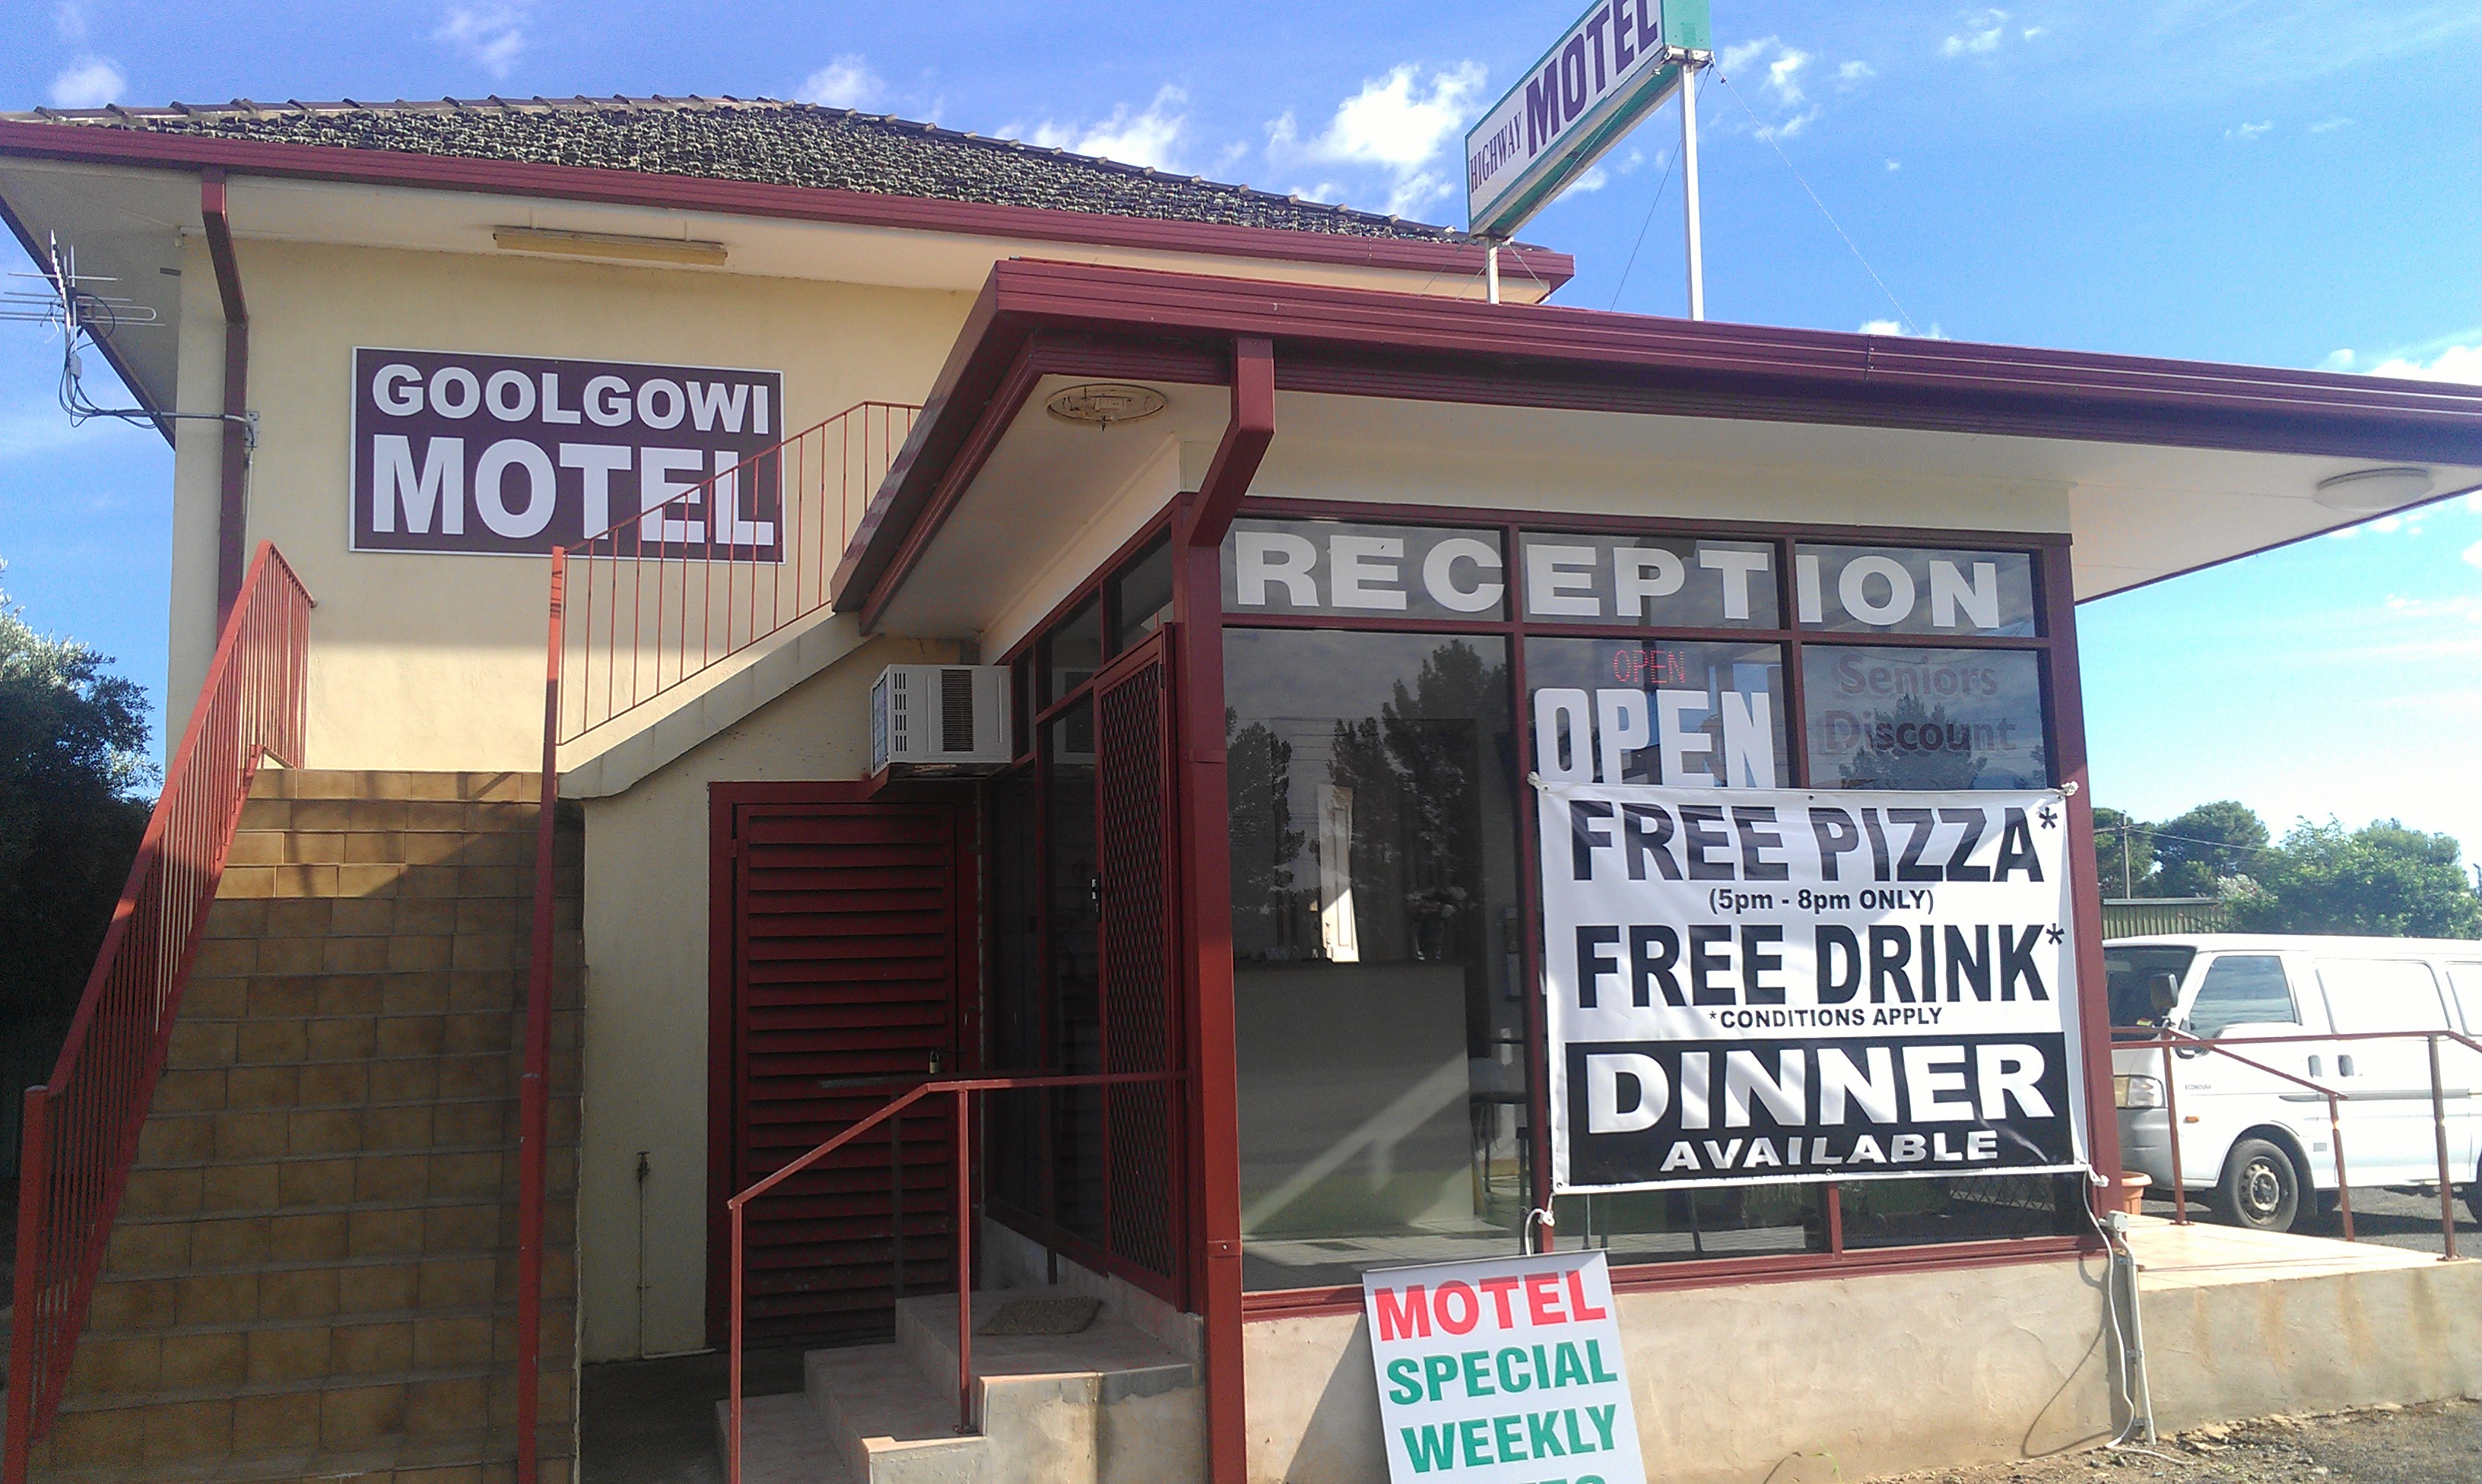 Royal Mail Hotel Goolgowi - Broome Tourism